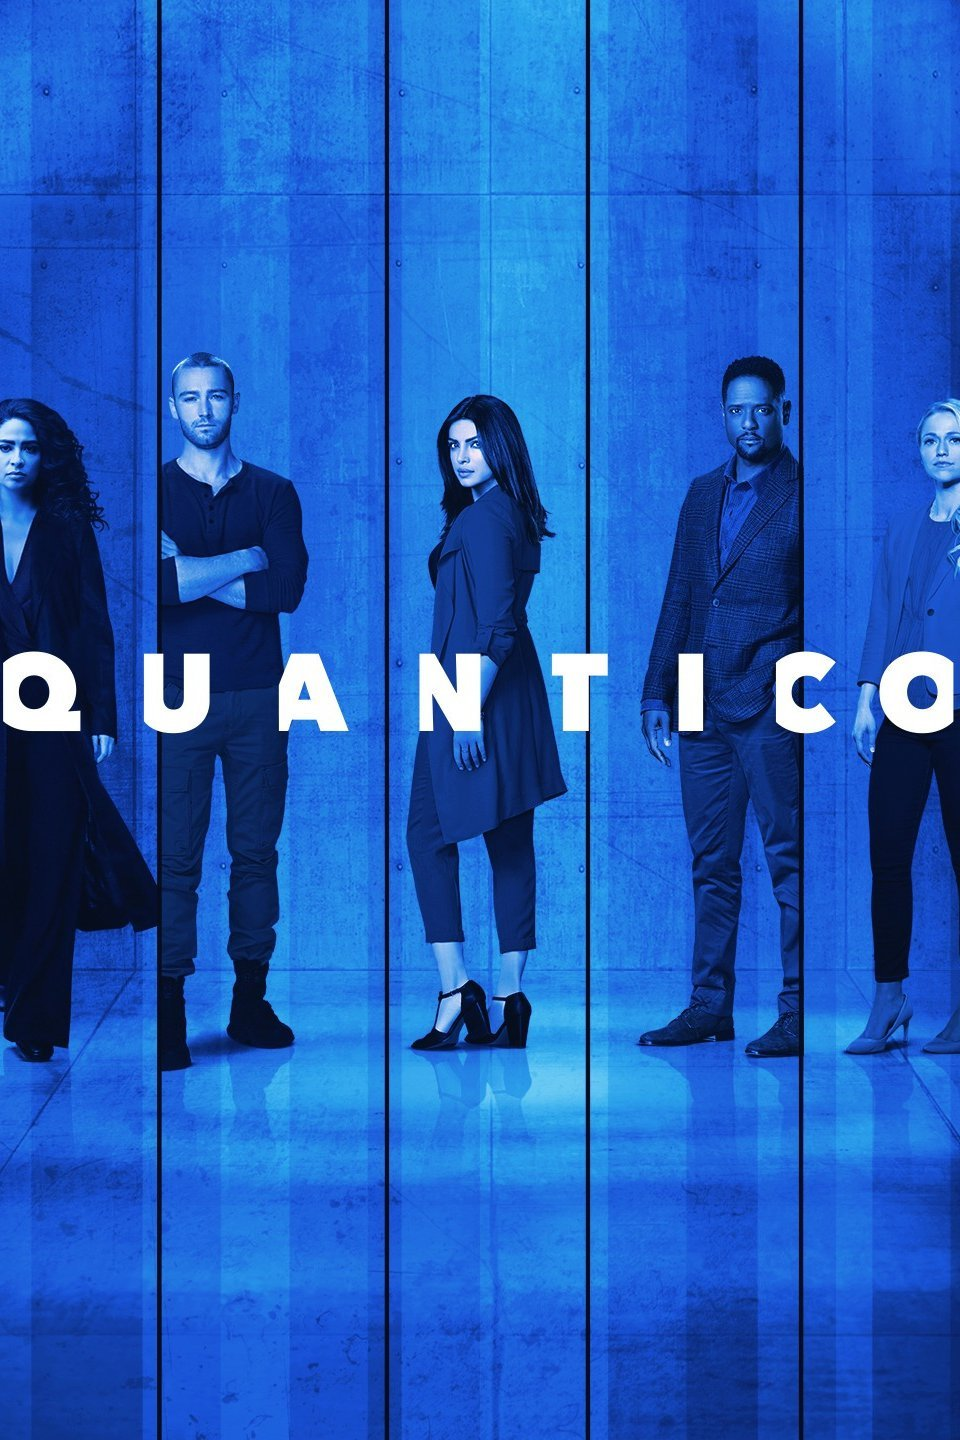 Quantico Season 2 Download Complete 480p HDTV